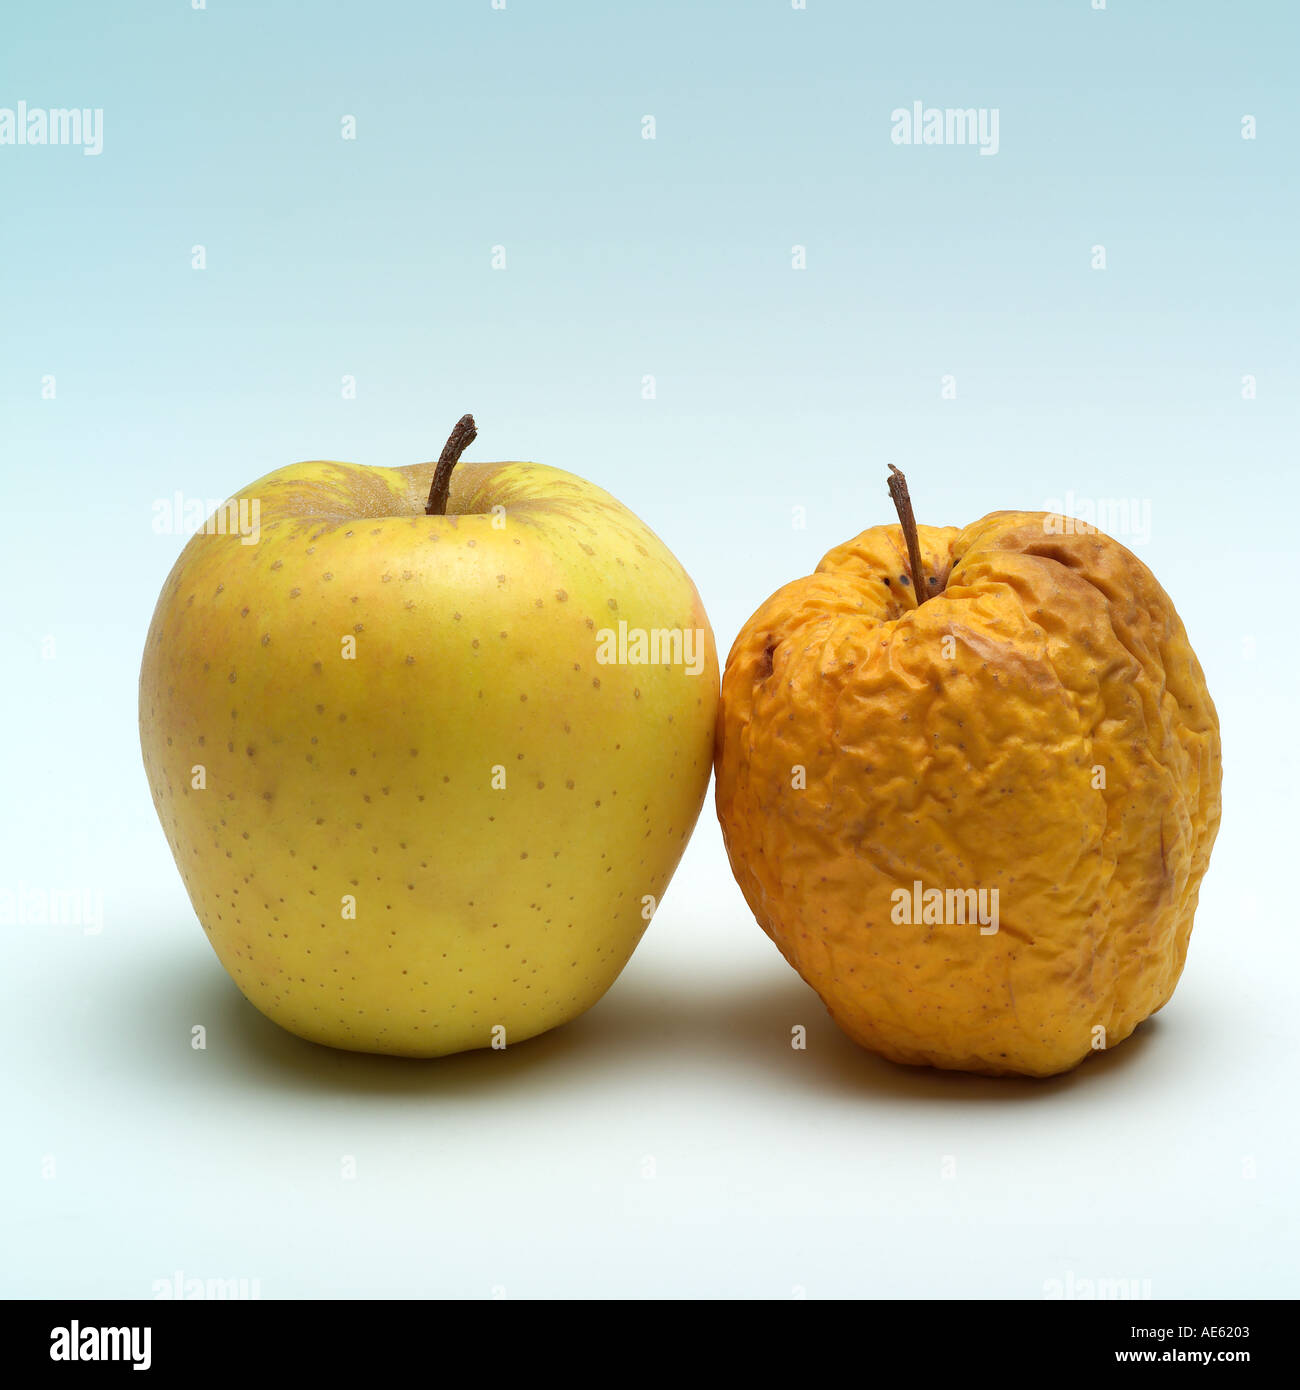 One fresh and one wrinkled Golden Delicious apples, bad skin concept - Stock Image